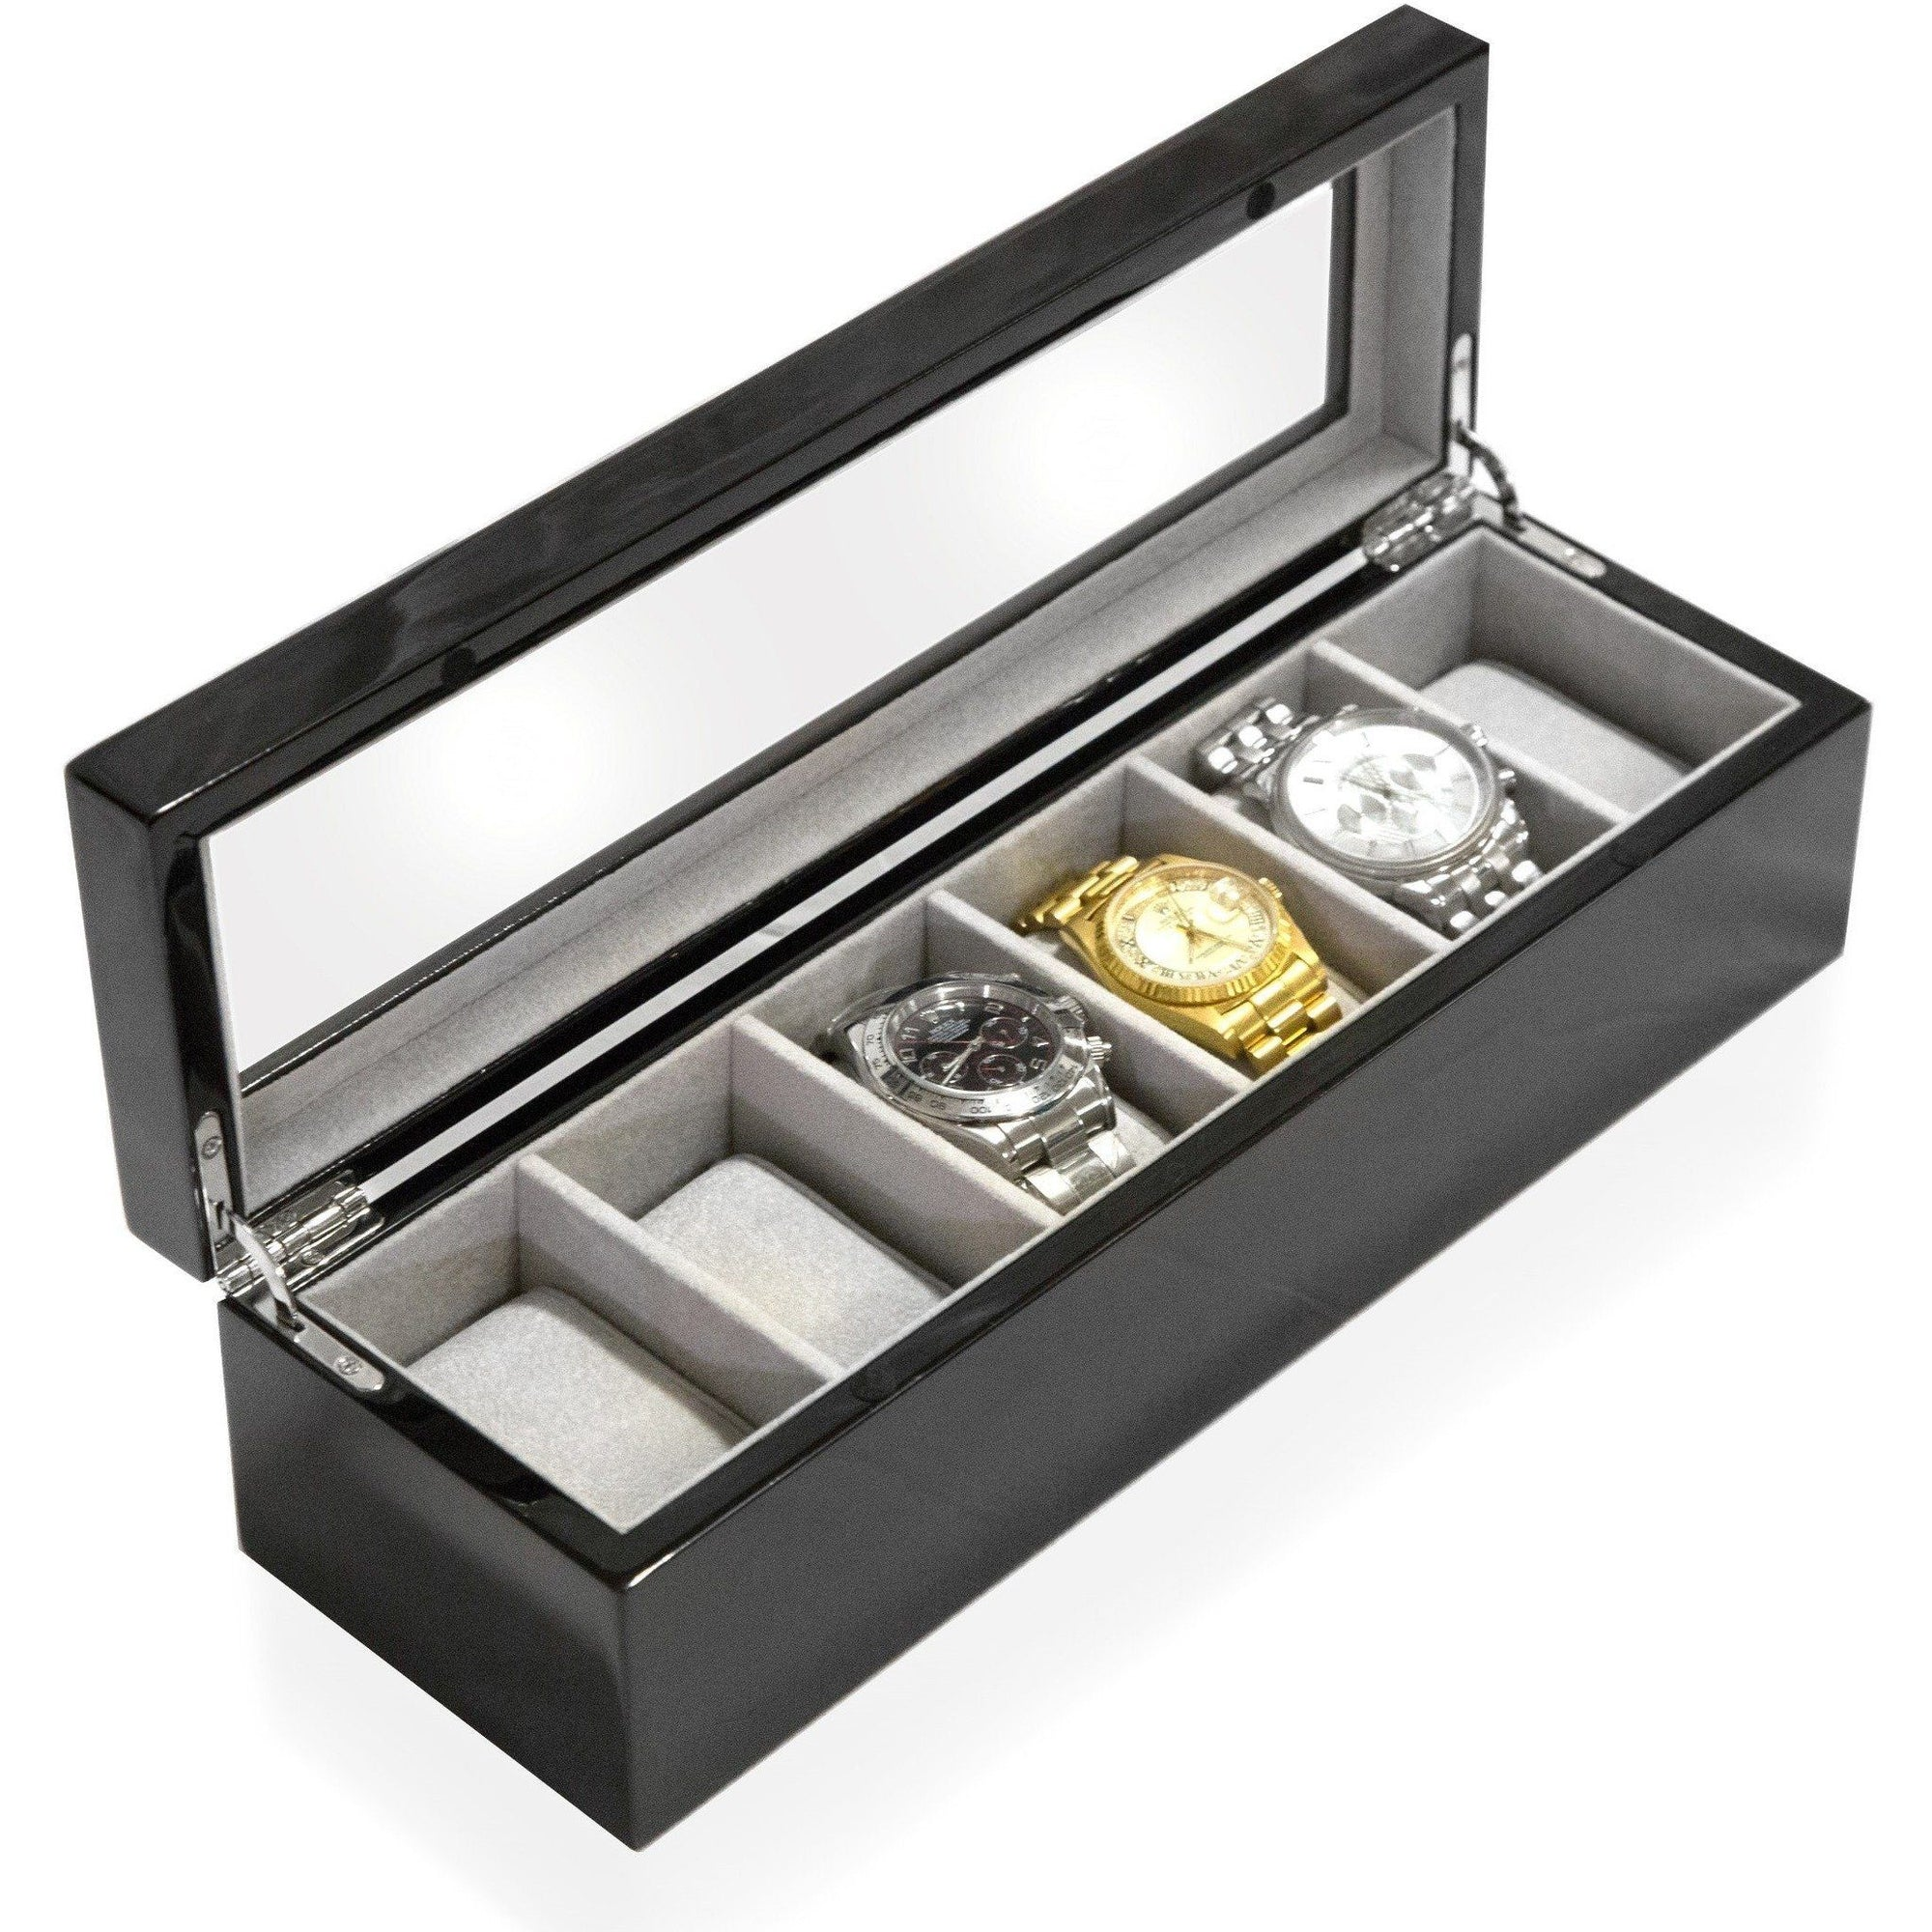 Long Watch Box with Glass Top 6 Compartments Black, Storage Boxes, Cuffed.com.au, CB3421, $99.00